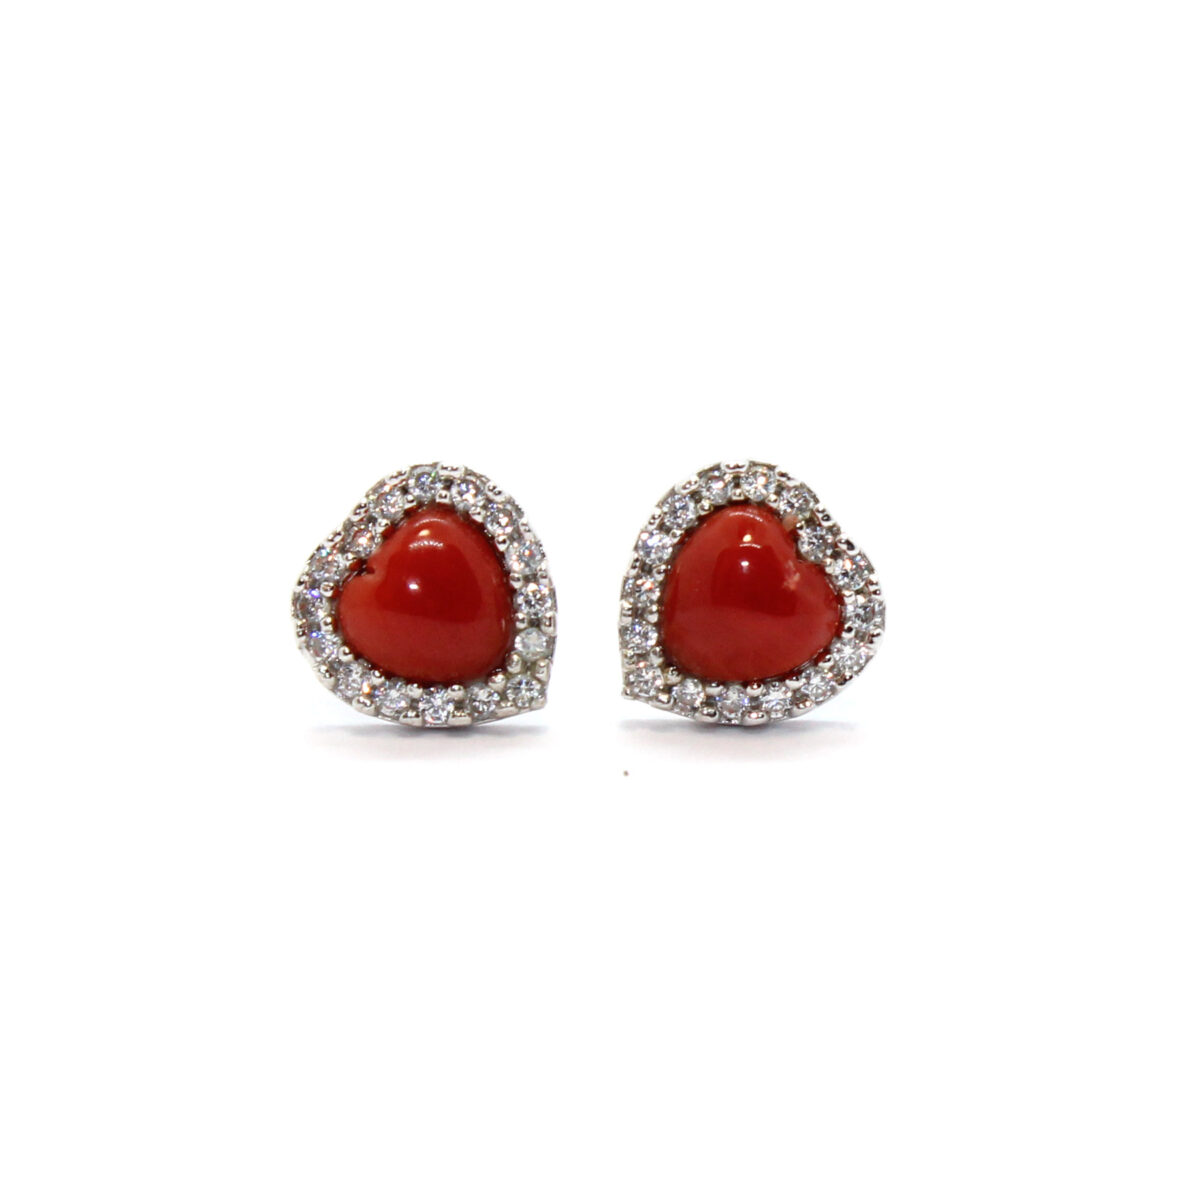 cuore earrings in silver and coral